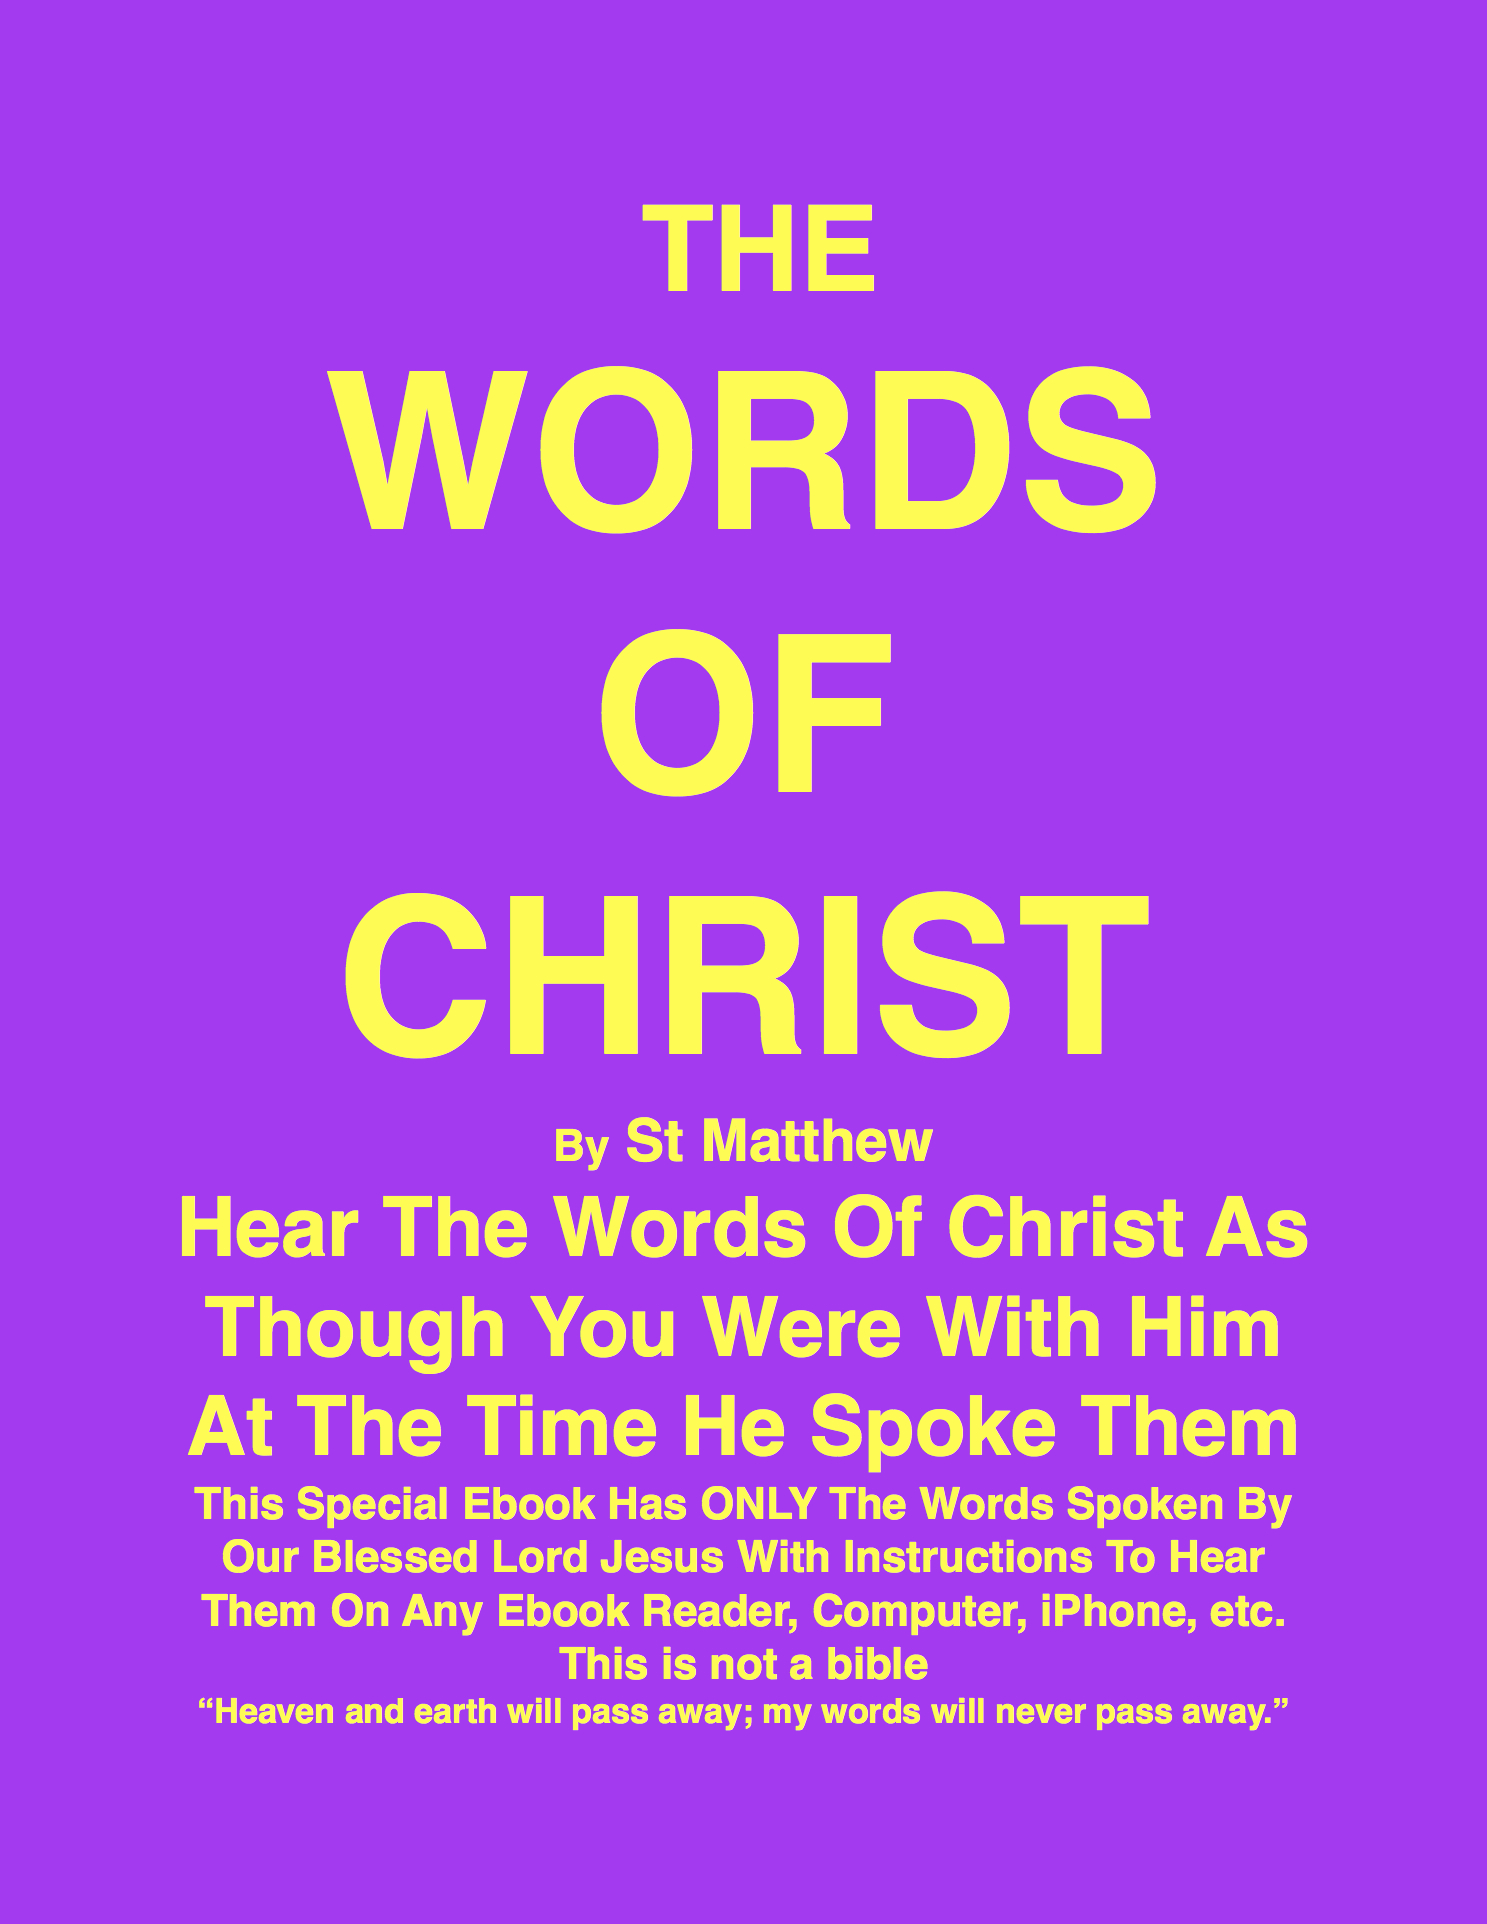 THE WORDS OF CHRIST By St Matthew